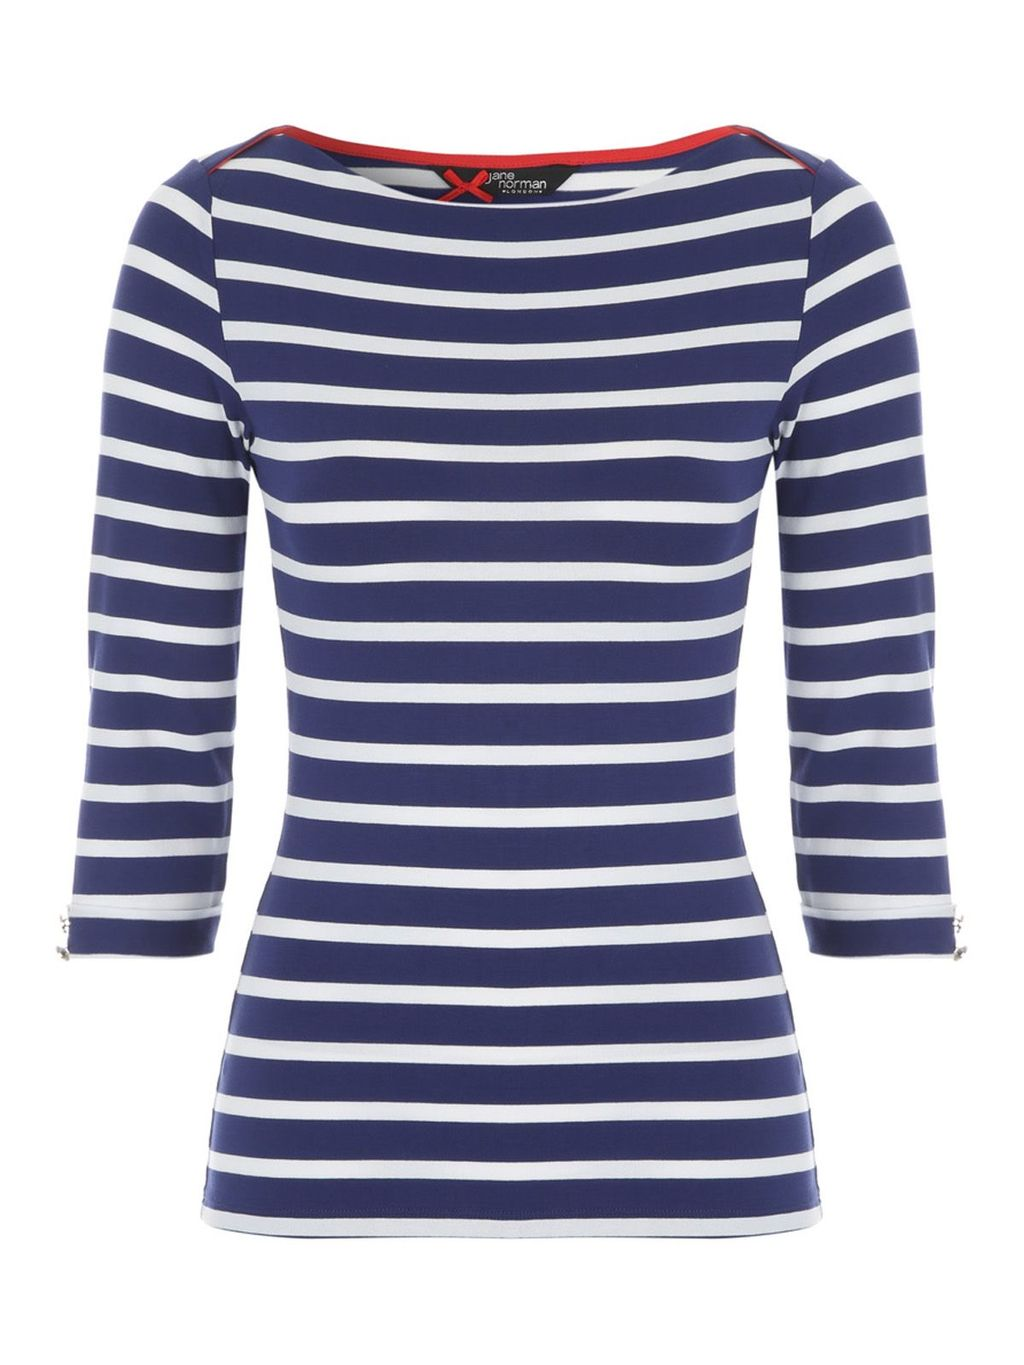 3/4length Boat Neck Top, Multi Coloured - neckline: slash/boat neckline; pattern: horizontal stripes; style: t-shirt; secondary colour: white; predominant colour: navy; occasions: casual; length: standard; fibres: cotton - stretch; fit: body skimming; sleeve length: 3/4 length; sleeve style: standard; texture group: jersey - clingy; pattern type: fabric; pattern size: standard; season: s/s 2016; wardrobe: basic